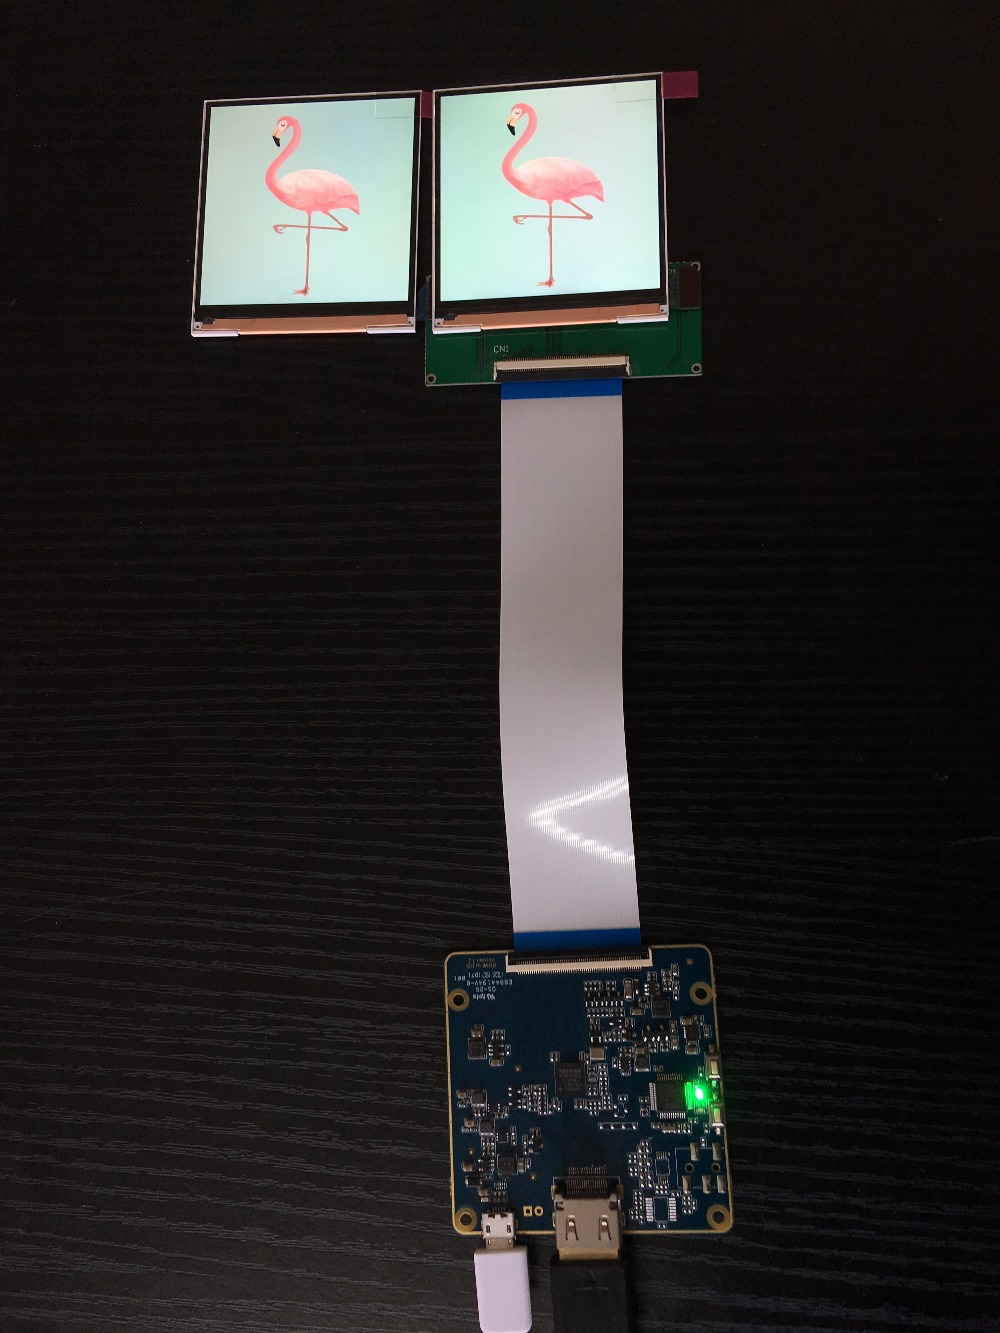 3.0 inch square TFT LCD display dual screen 720*720 resolution MIPI interface with HDMI driver board